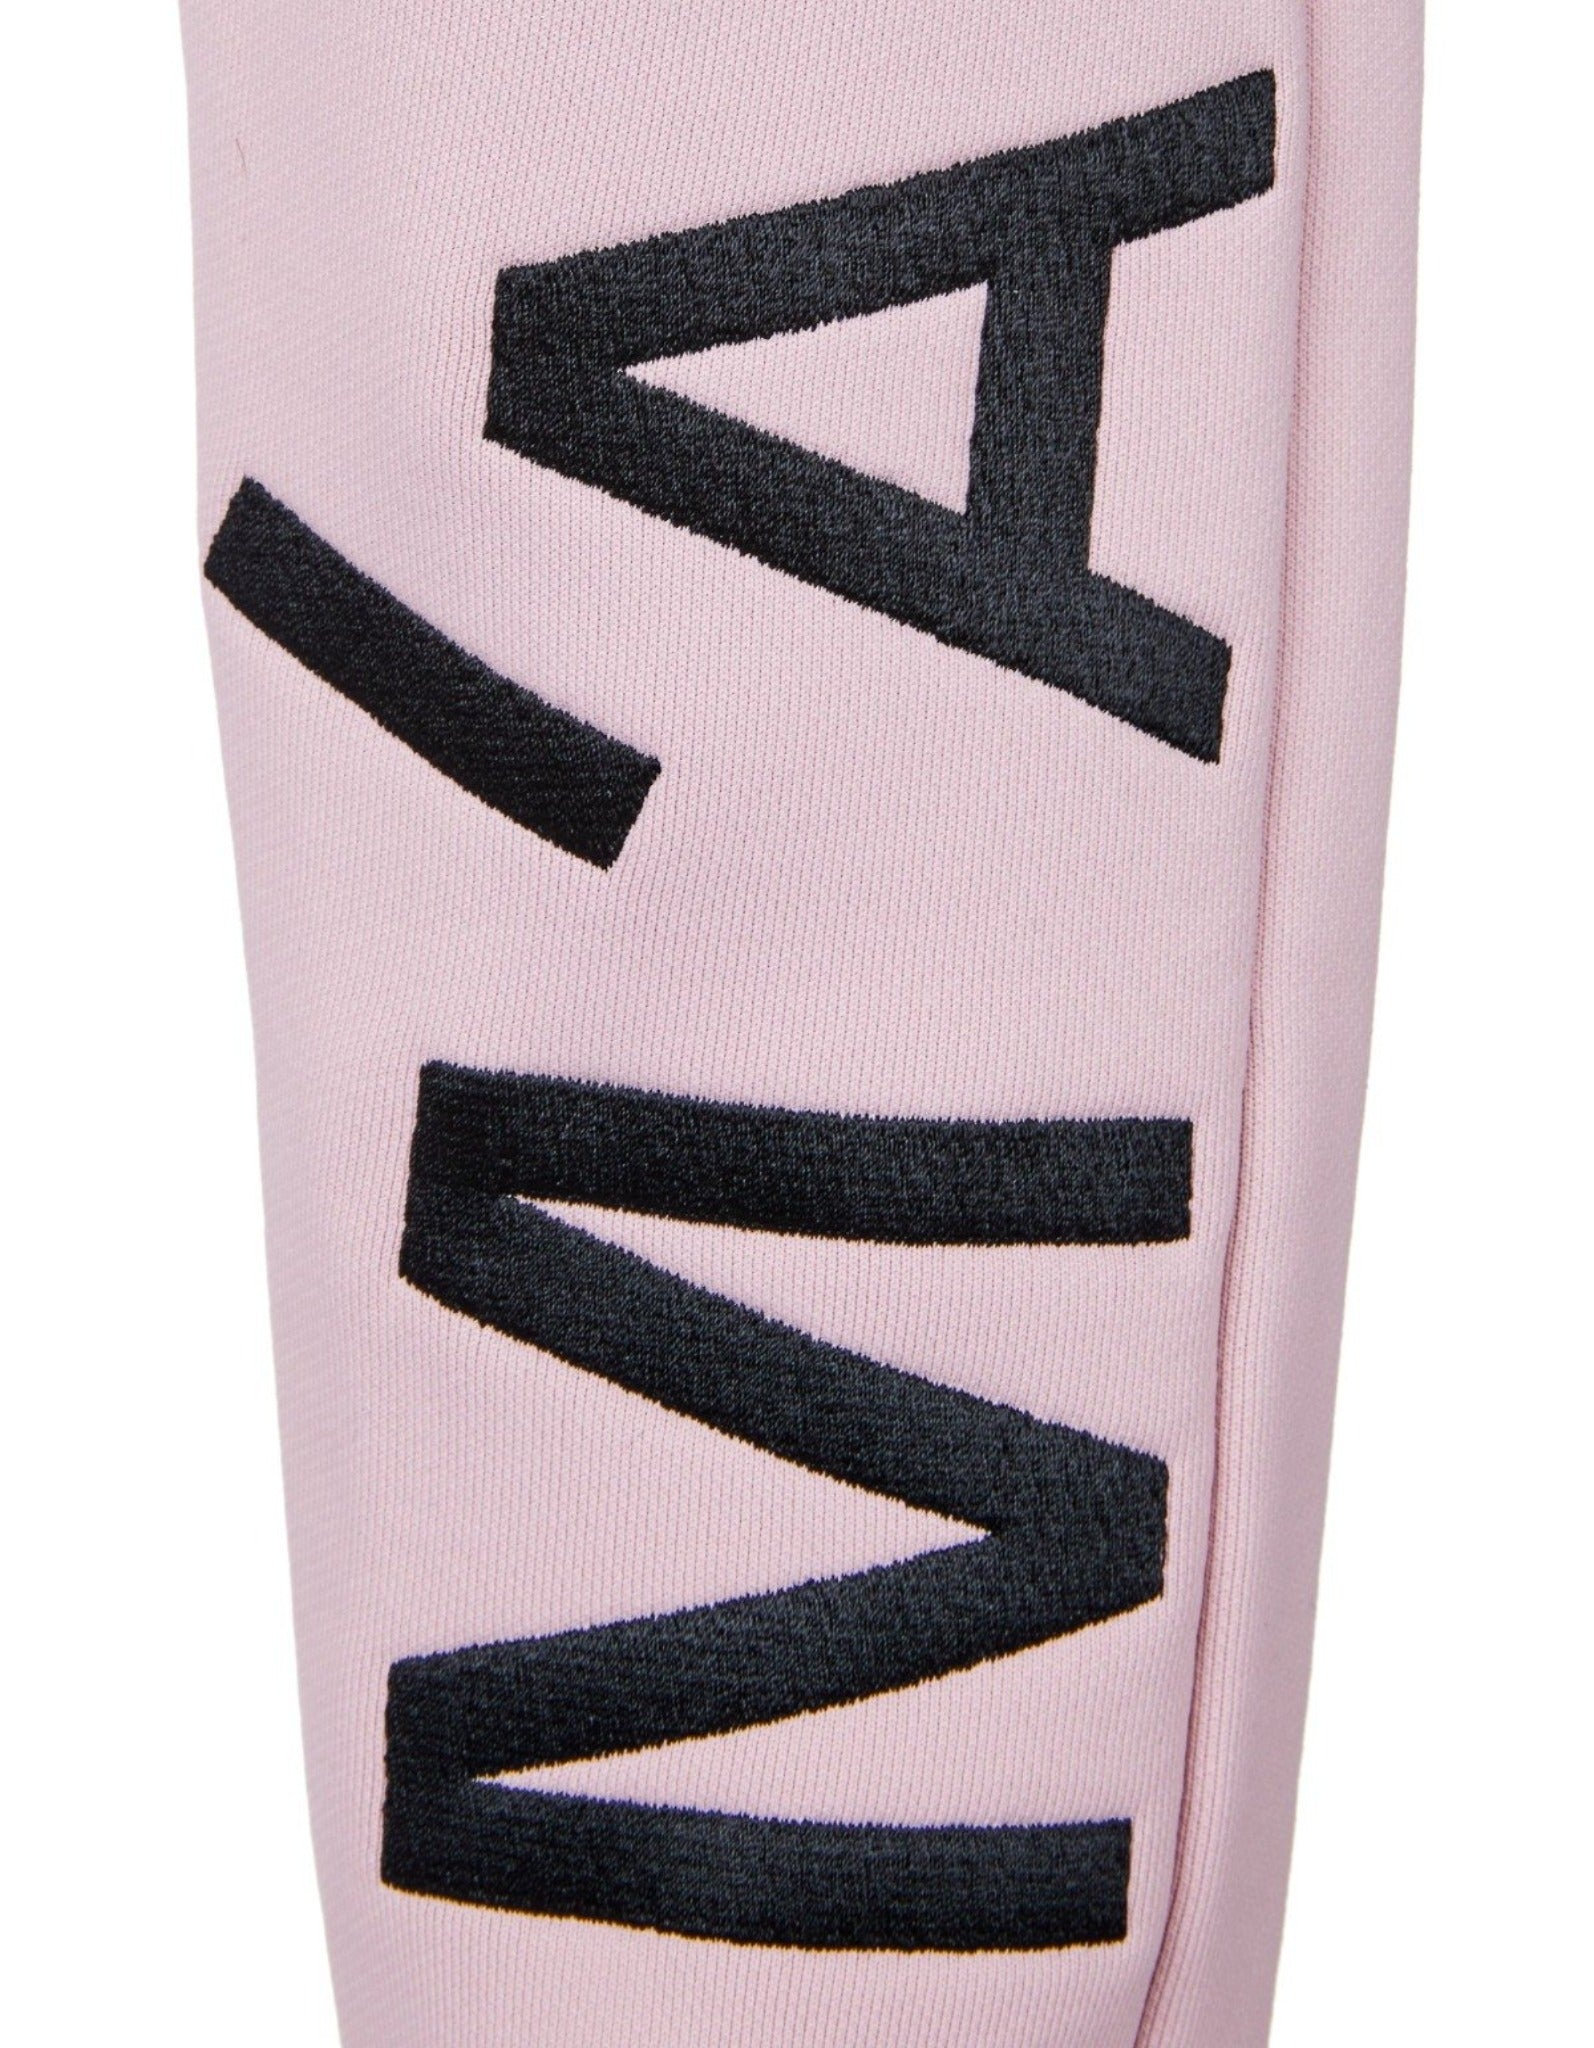 M'A KIDS EMBROIDERED ELASTIC CUFF TROUSERS IN PINK